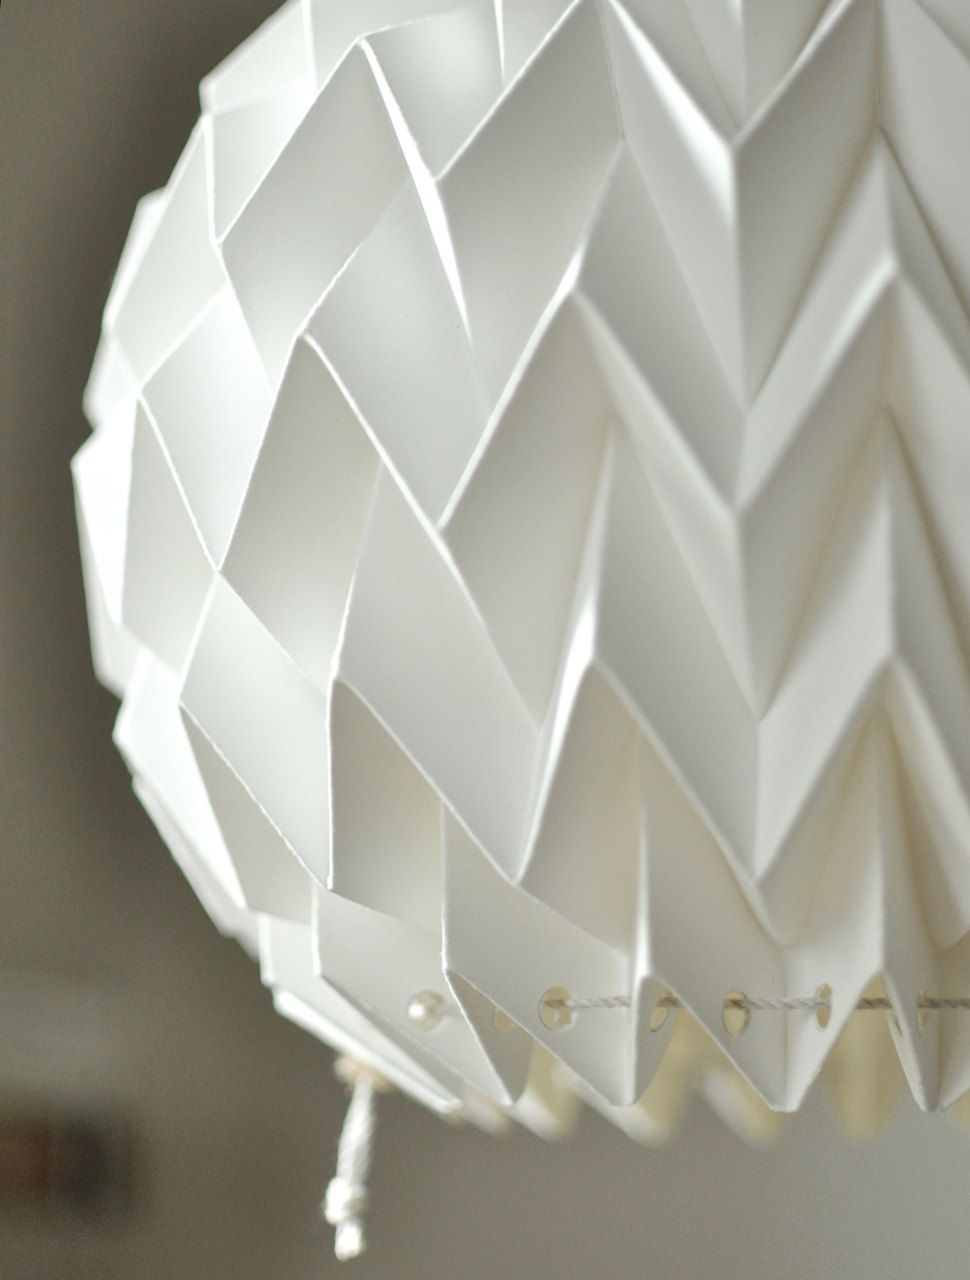 origami paper lamp shade lantern bubble etsy lamparas pinterest papel origami y. Black Bedroom Furniture Sets. Home Design Ideas